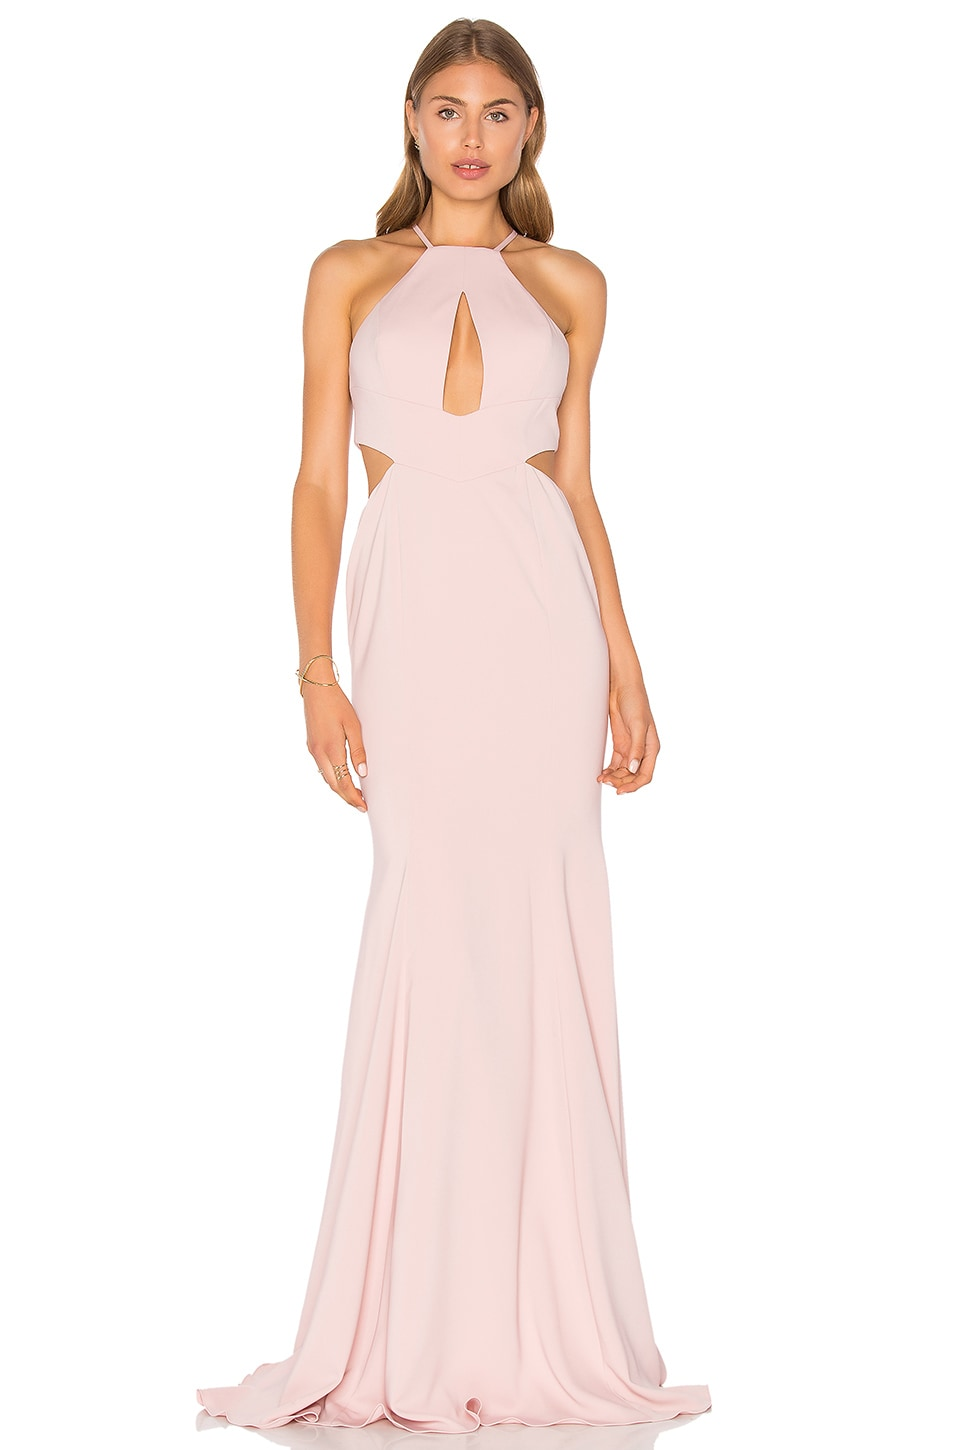 Jay Godfrey Sao Paulo Gown in Blush